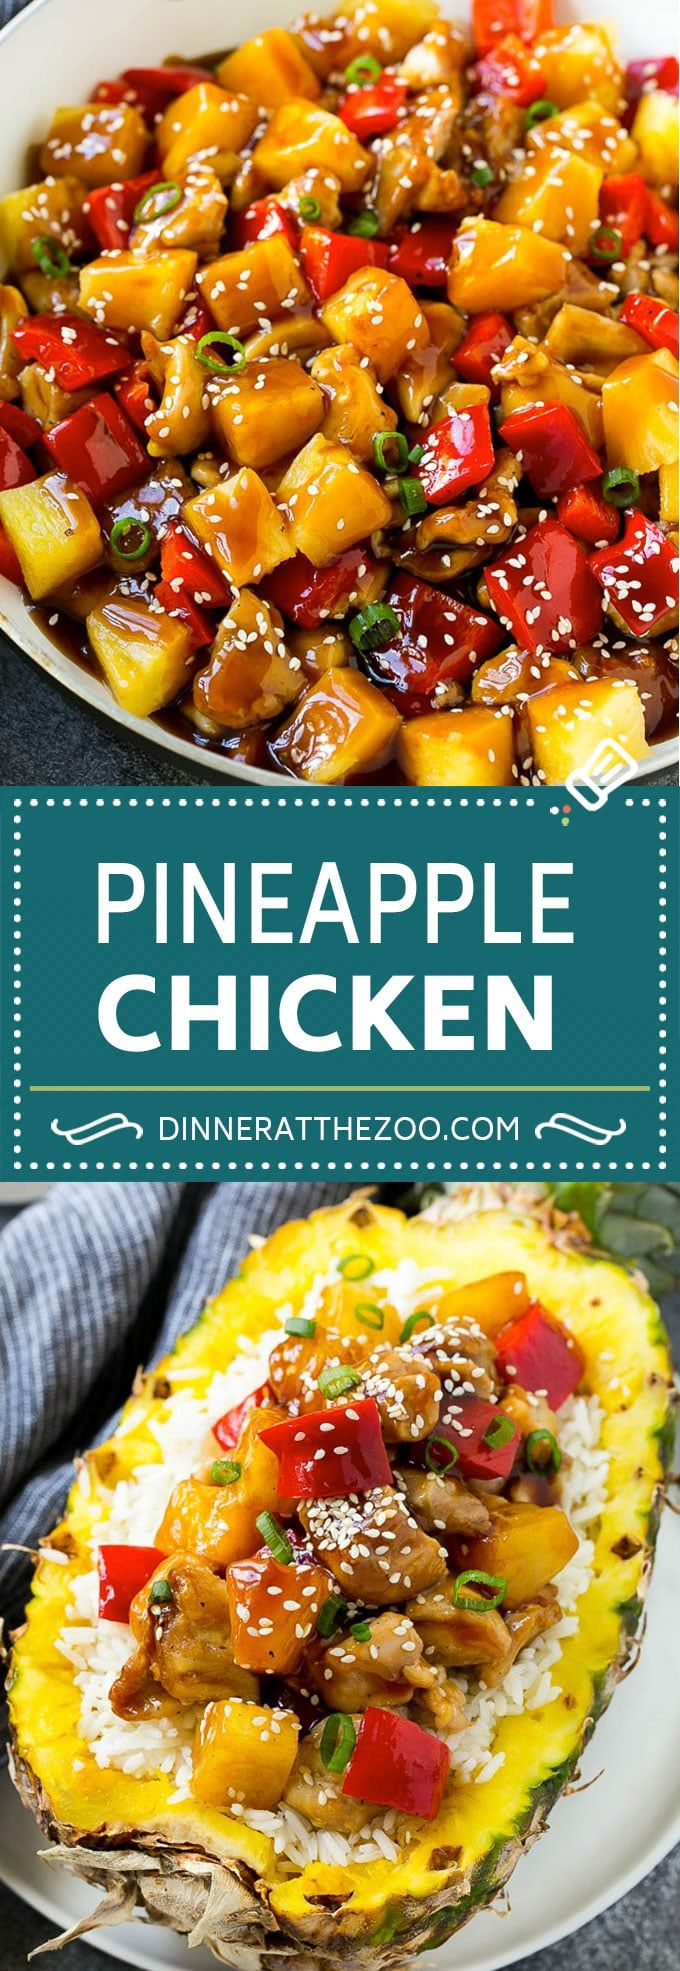 413 best ASIAN * RECIPES images on Pinterest | 1920s, Arbonne and ...